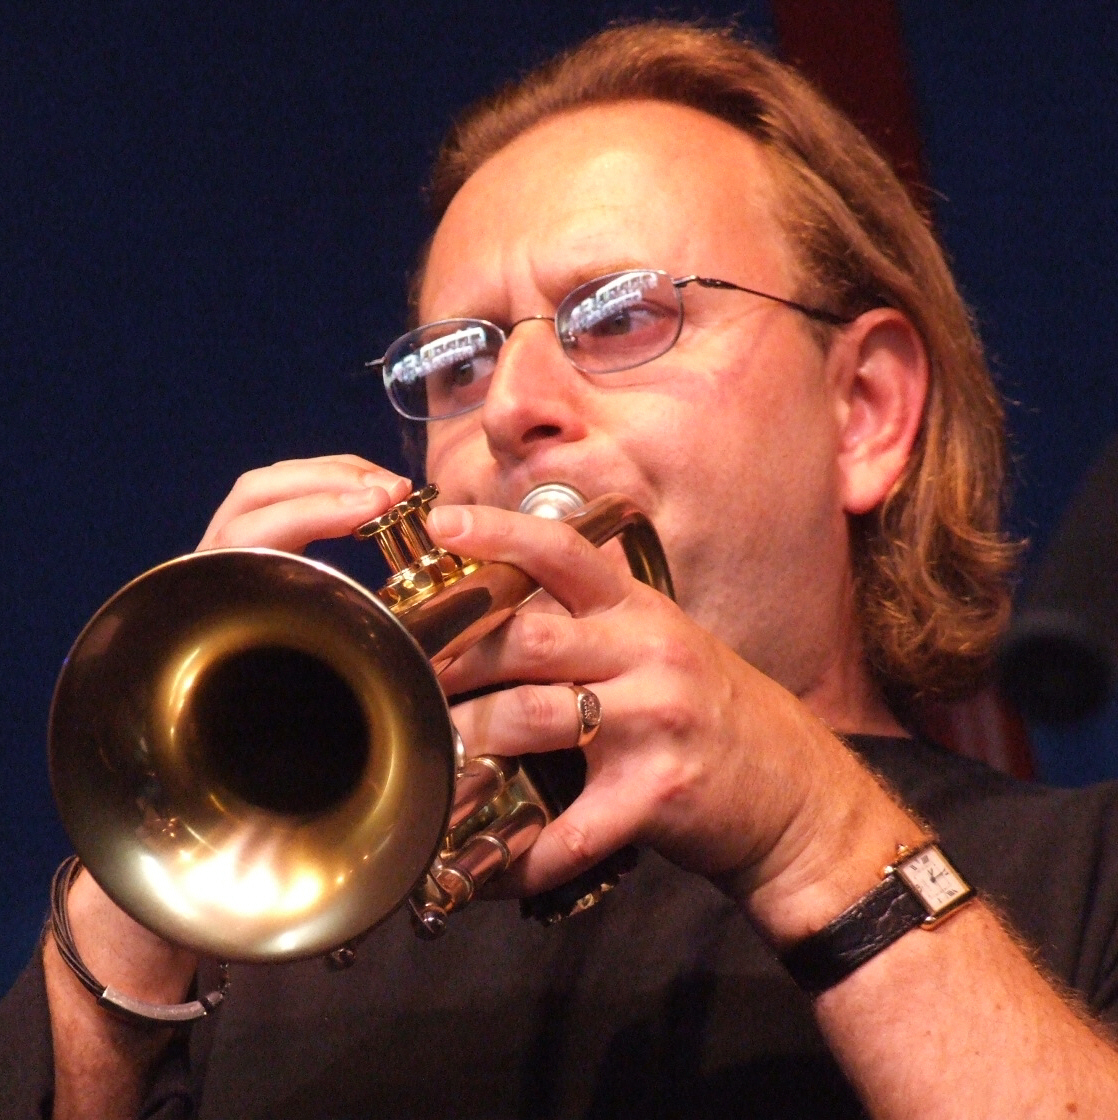 Martin Shaw with w. Morson's off the Cuff, 2009 Ealing Jazz Festival